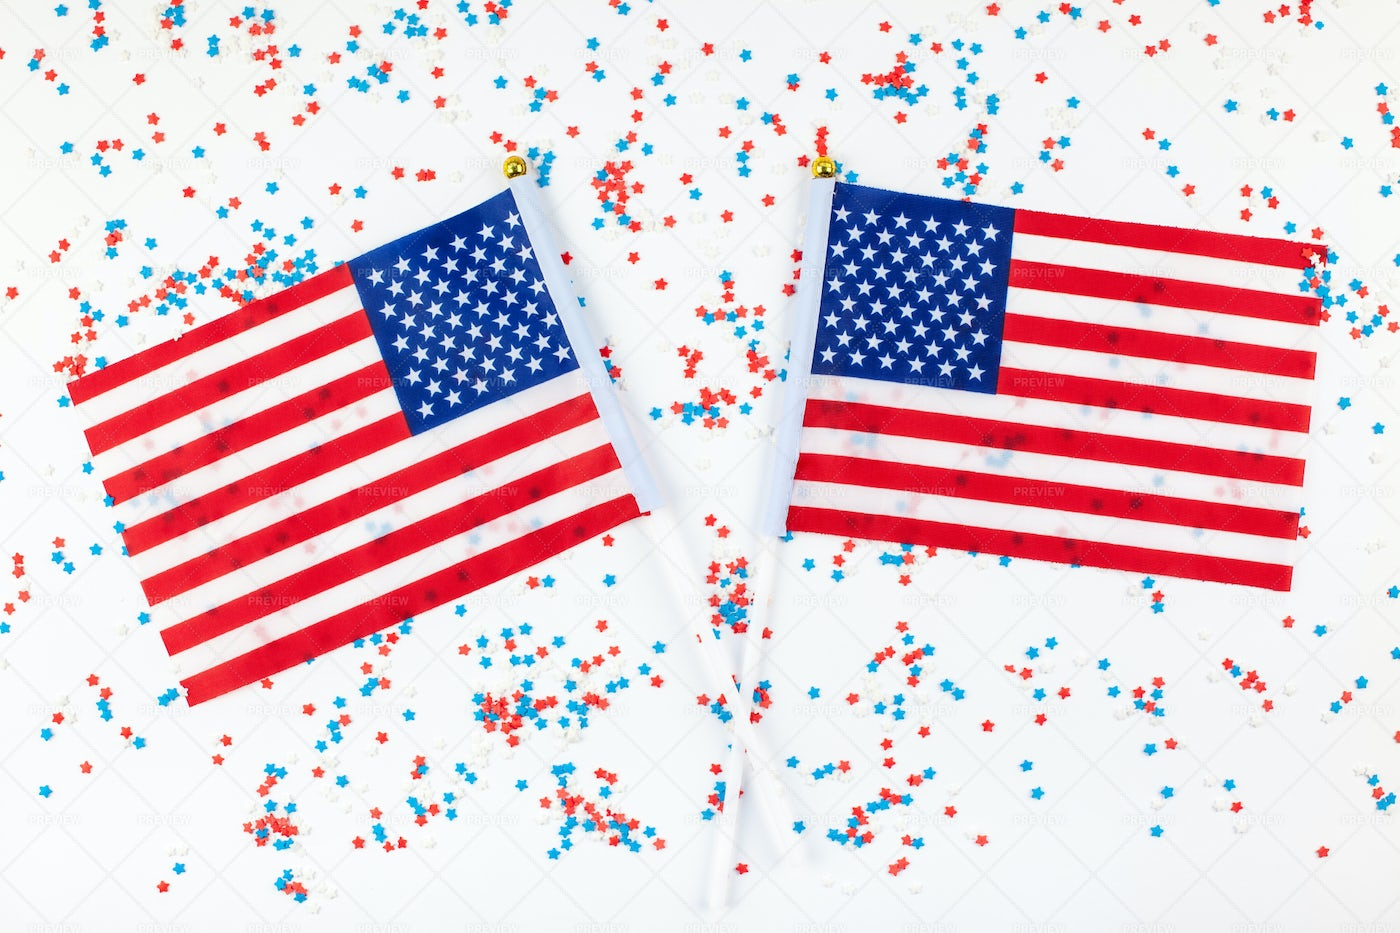 US Flags With Confetti: Stock Photos